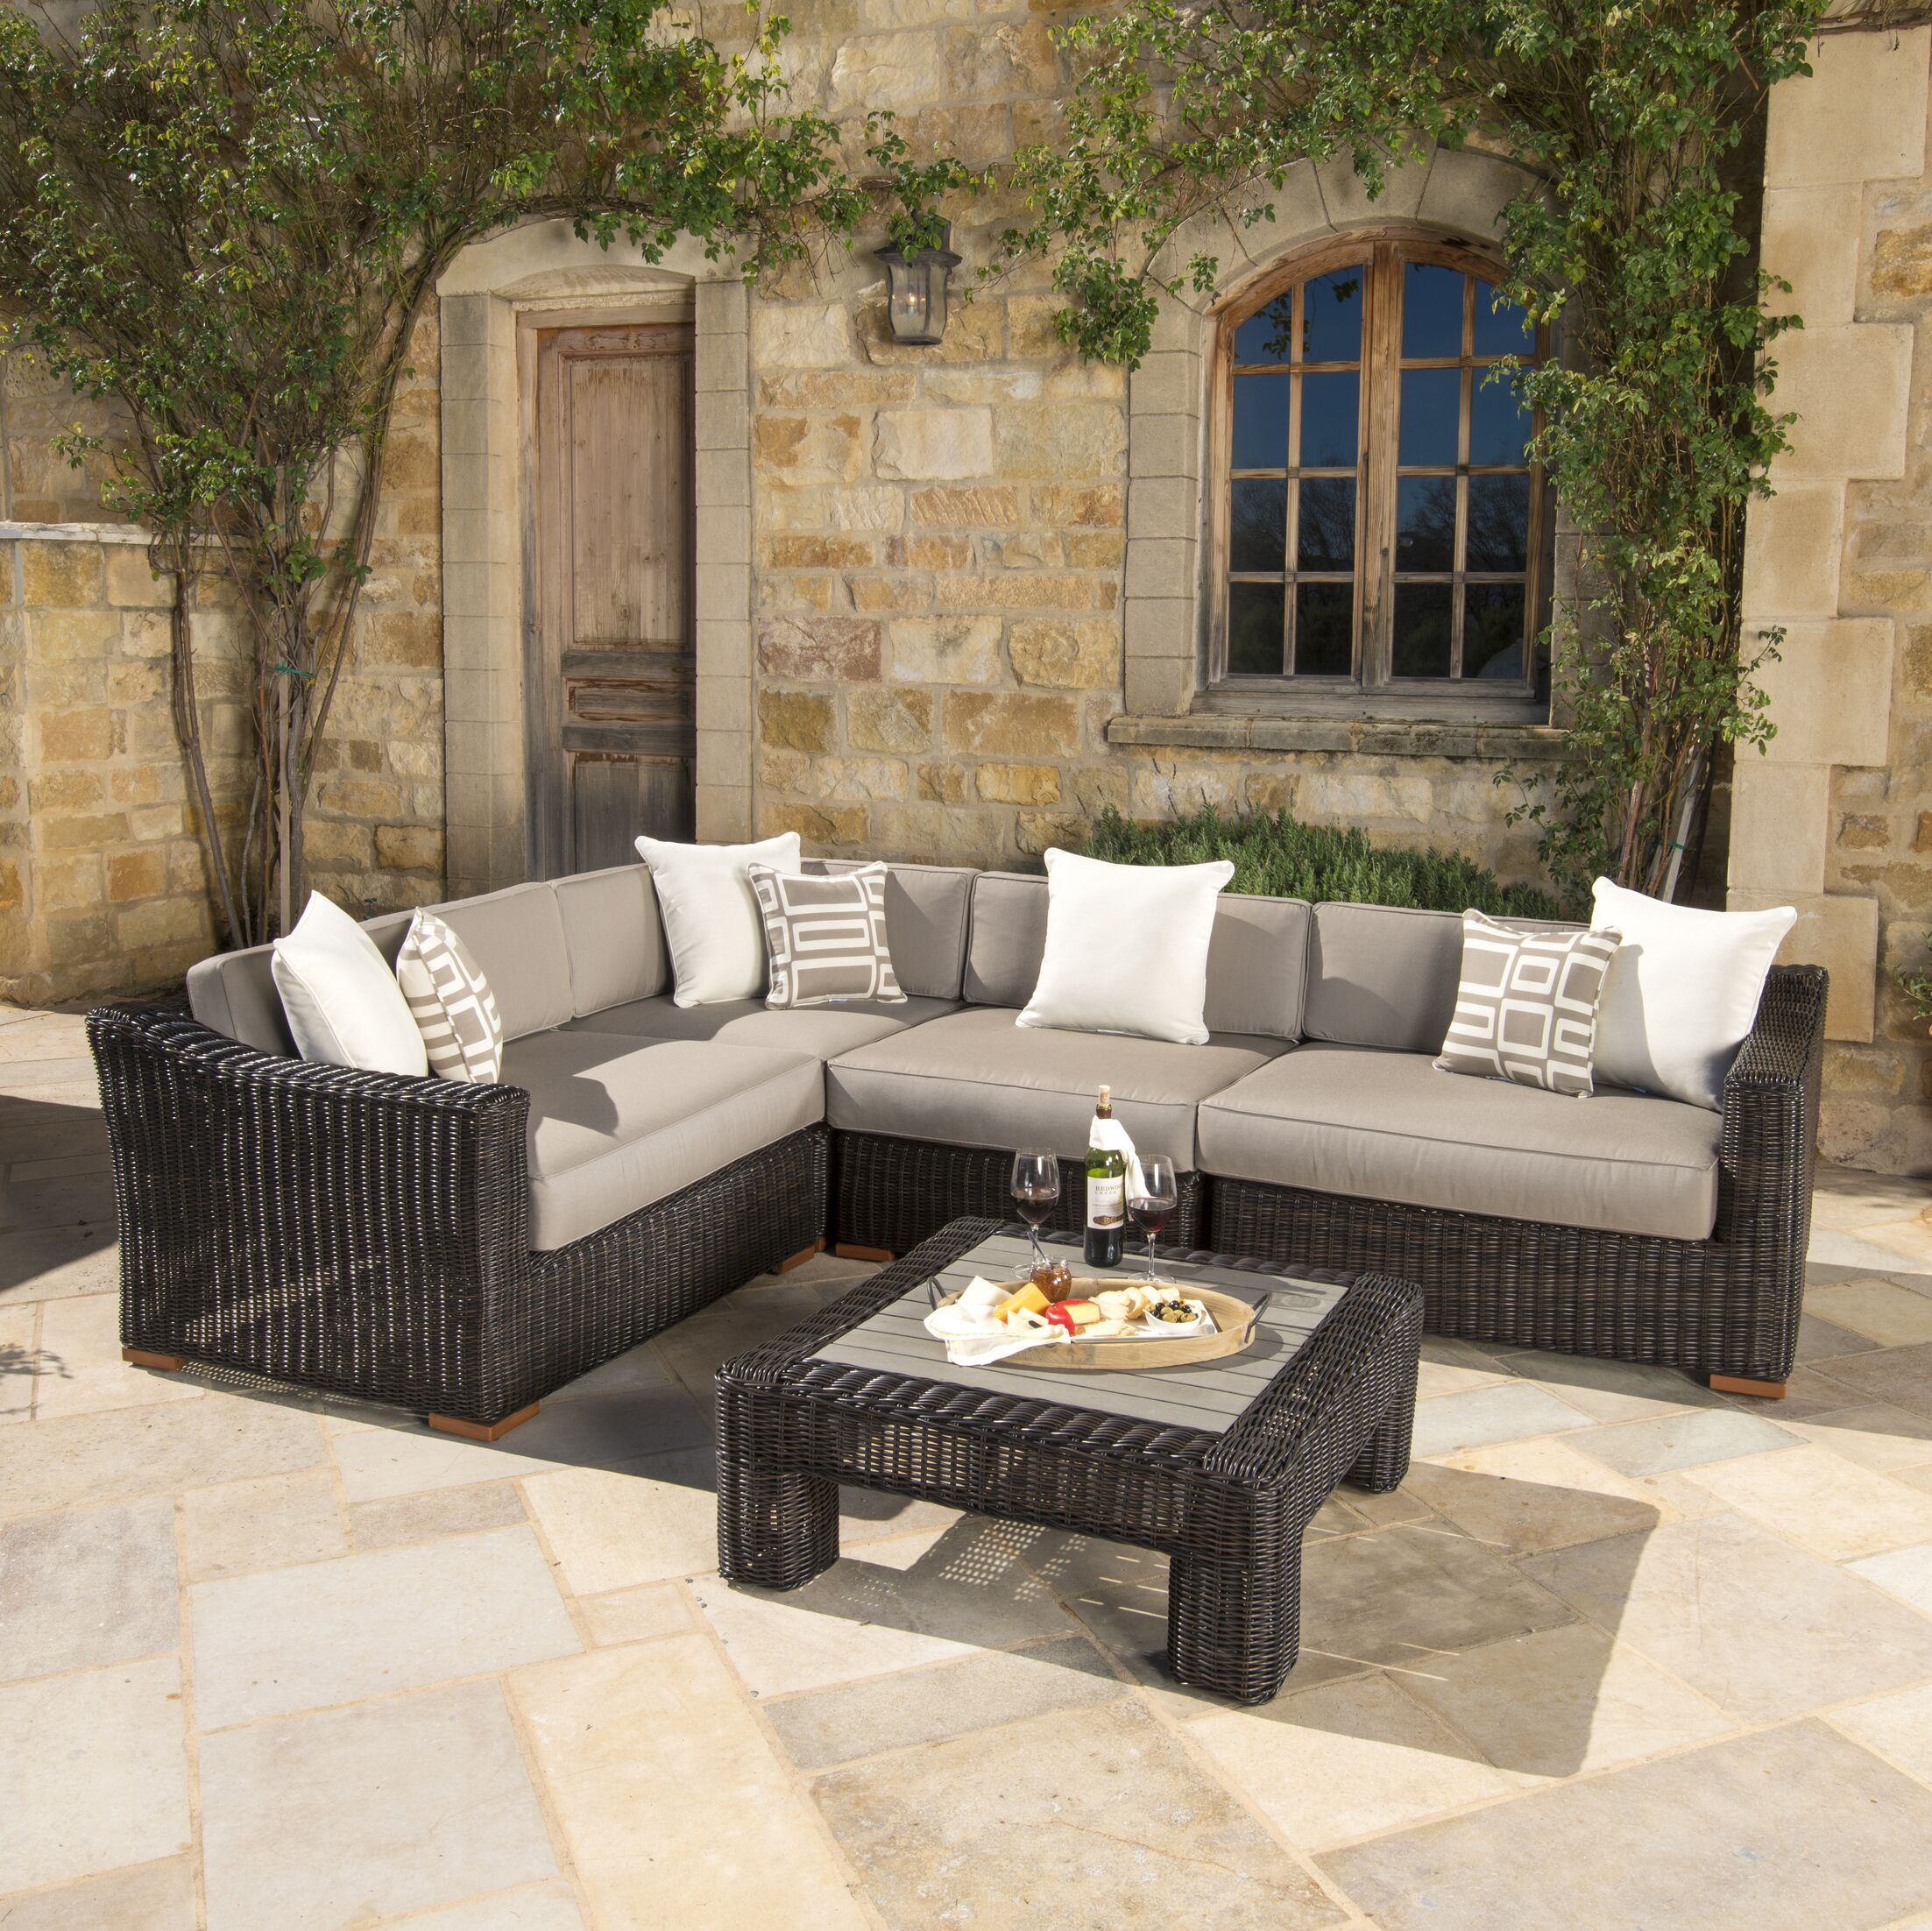 Monroeville 5 piece Sunbrella Sectional Set with Cushions Fabric: Frank Stone, Color: Espresso